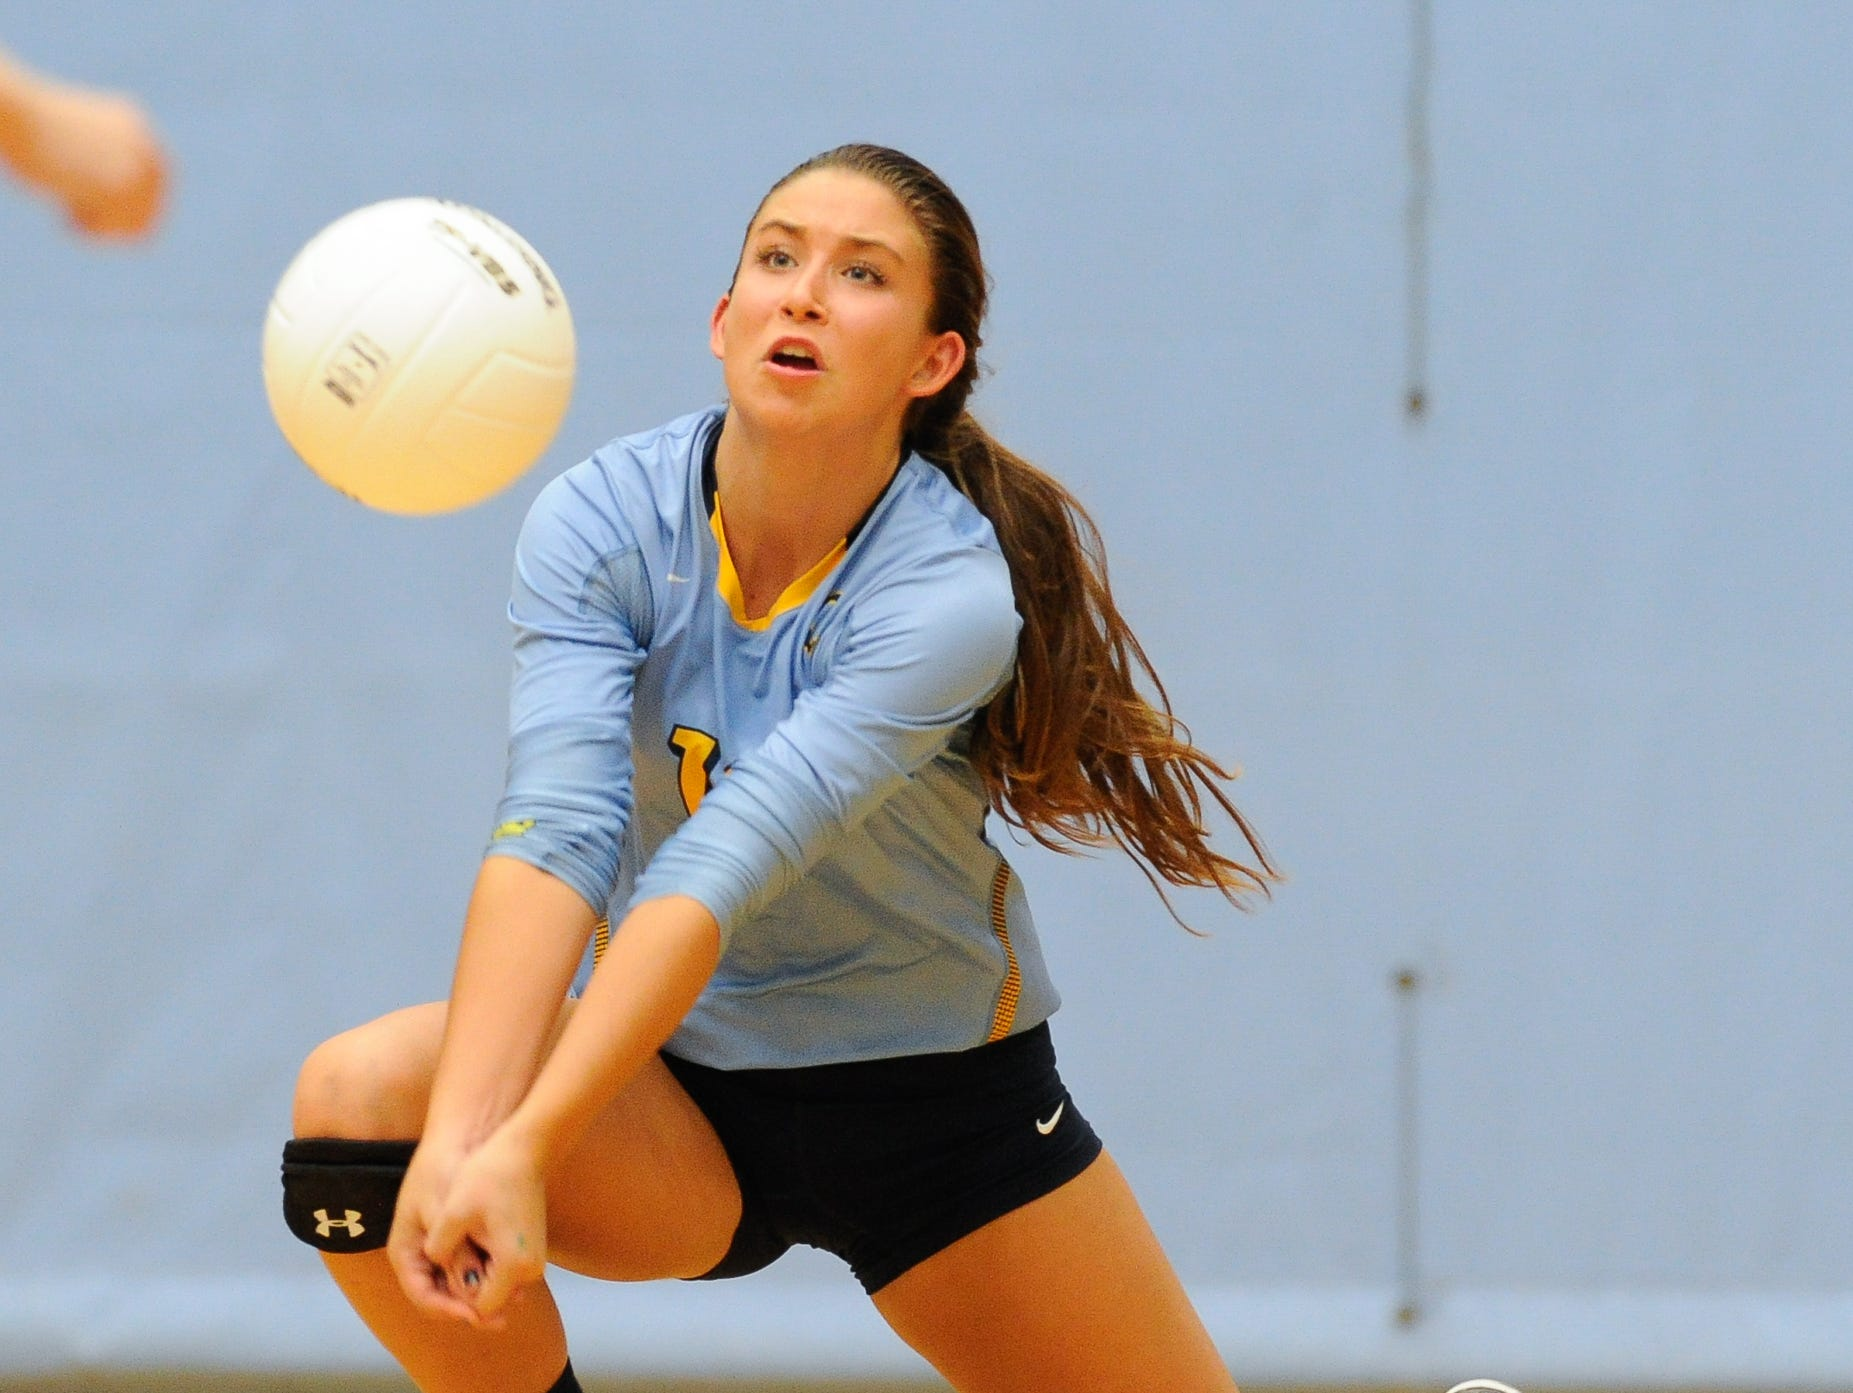 Cape's #16 Isabelle Marsico with a bump in the second game against Conrad Thursday night at Cape Henlopen High School.